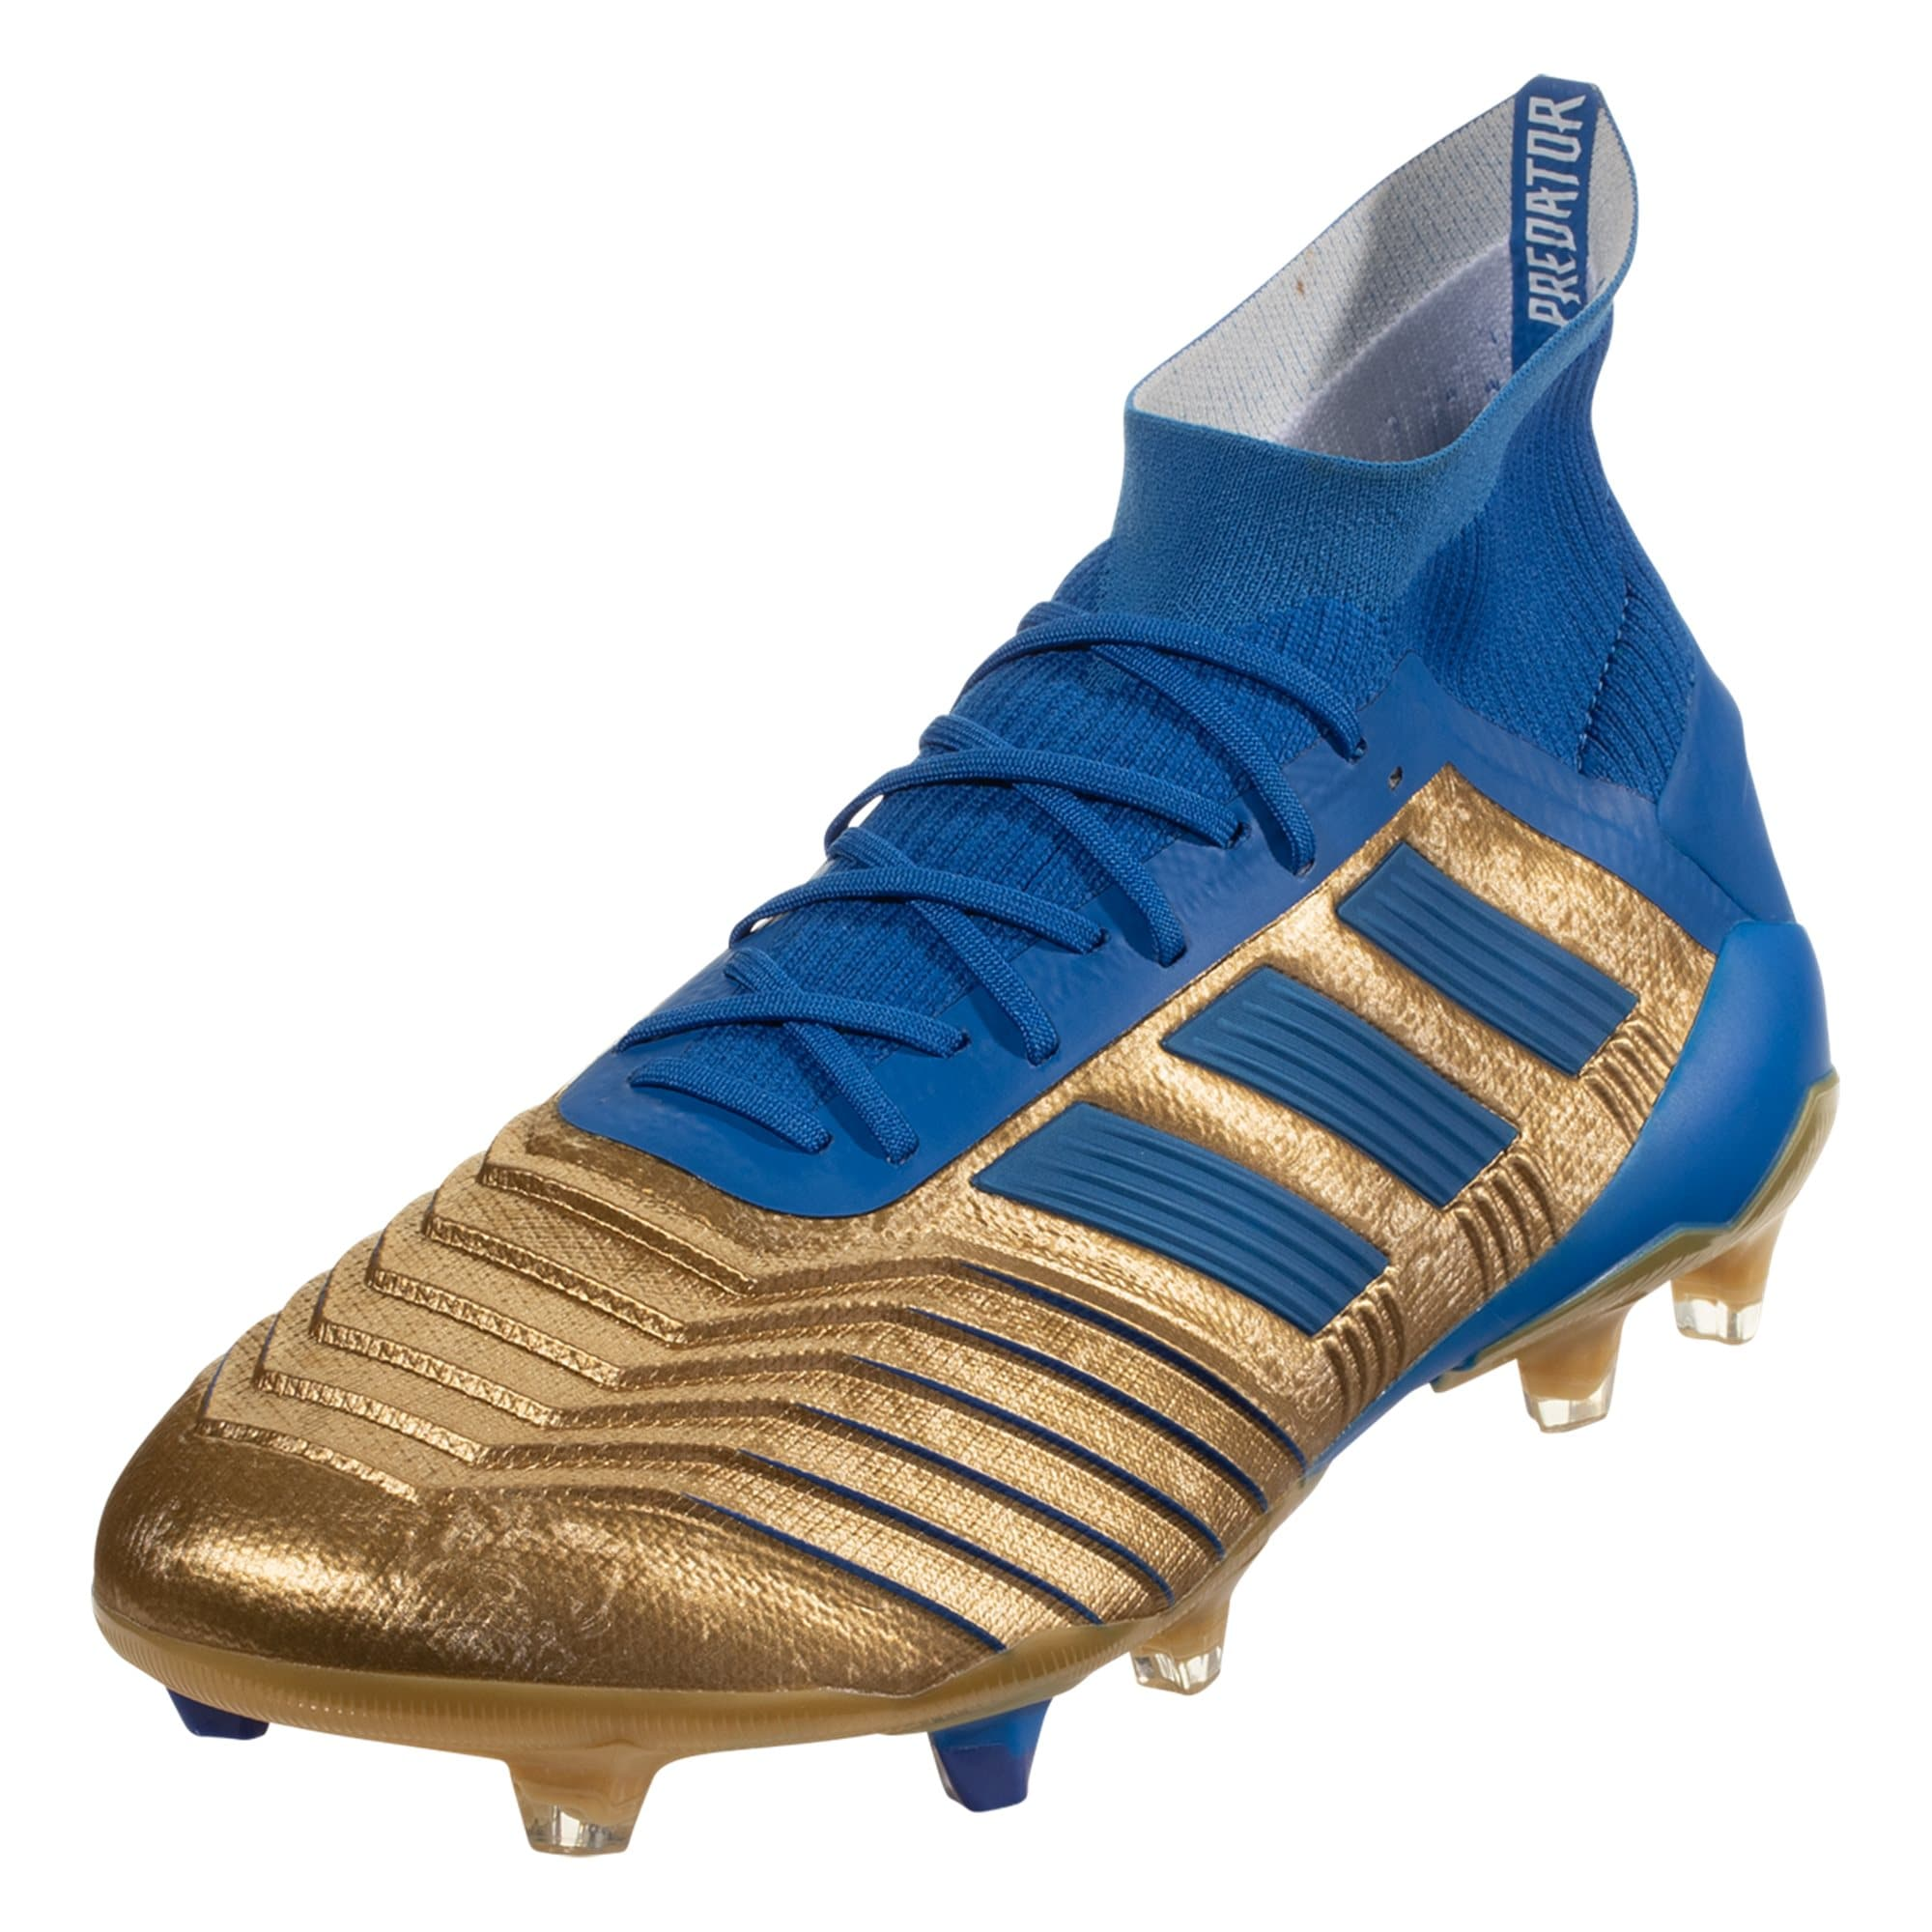 adidas Predator 19.1 FG Soccer Cleat - Metallic Gold / Blue / White